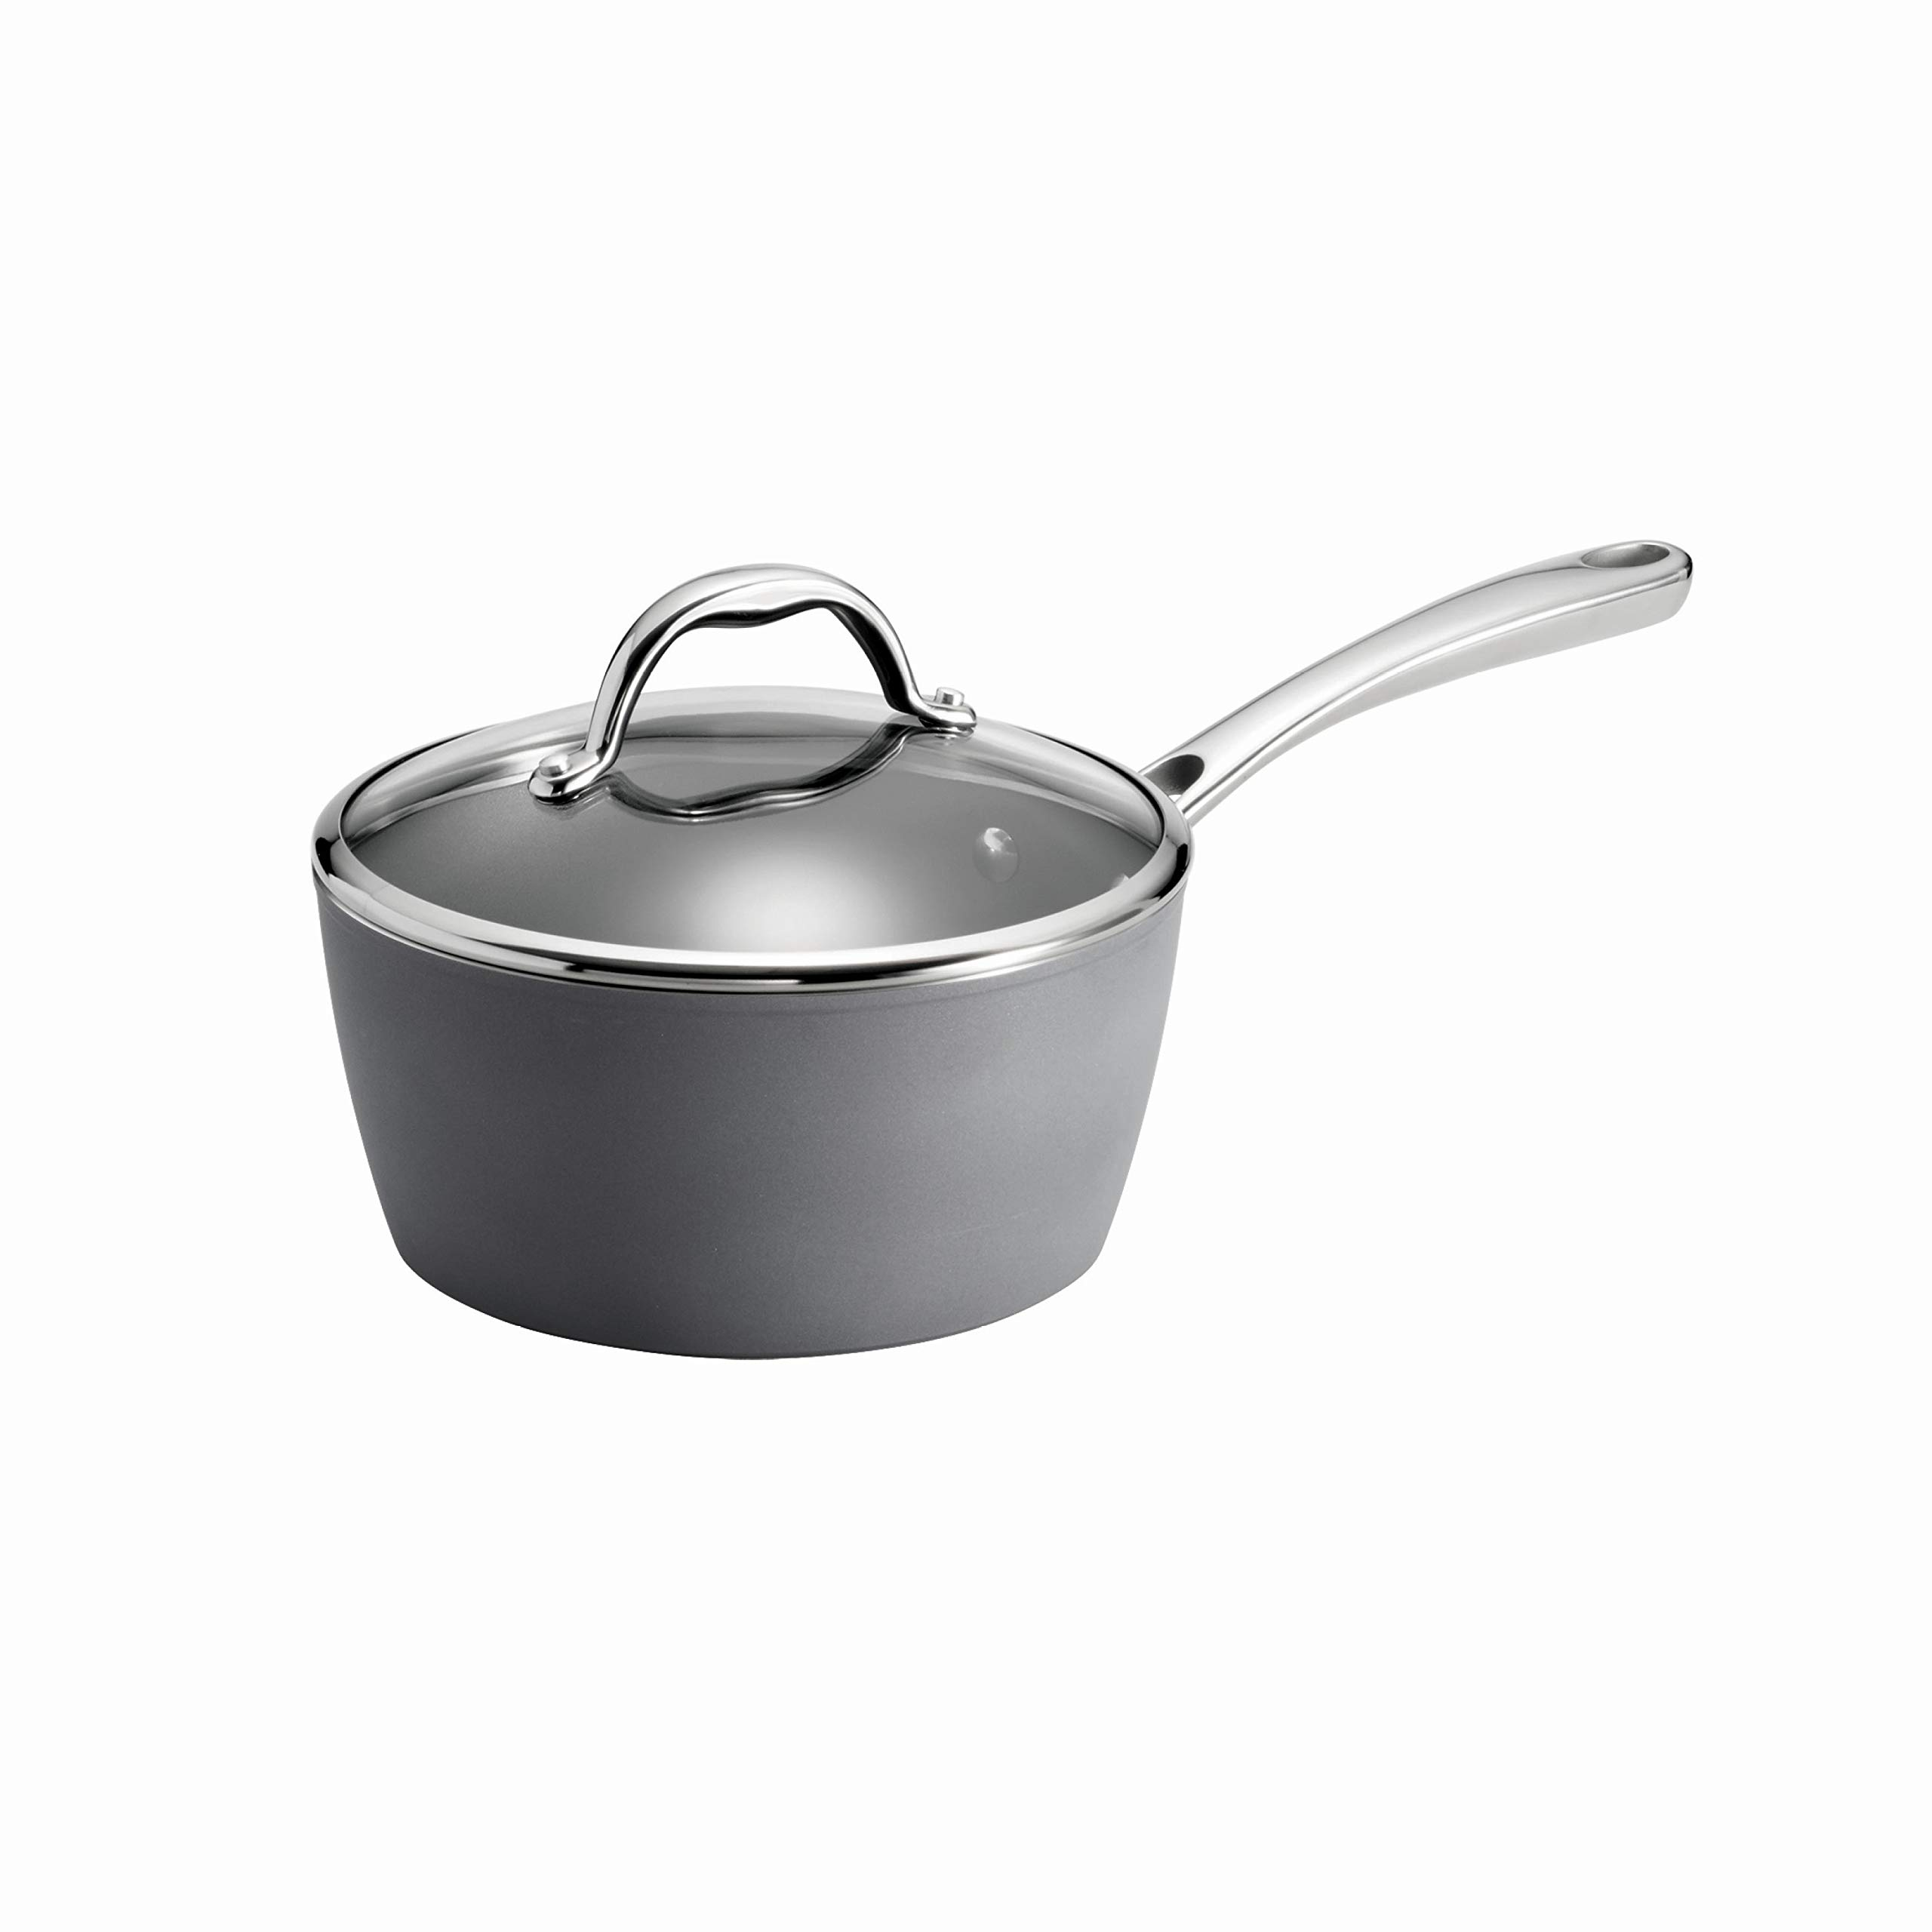 Tramontina 80110/099DS Gourmet Induction Aluminum Nonstick Covered Sauce Pan, Made in Italy, 3 3, 3-Quart, Slate Gray